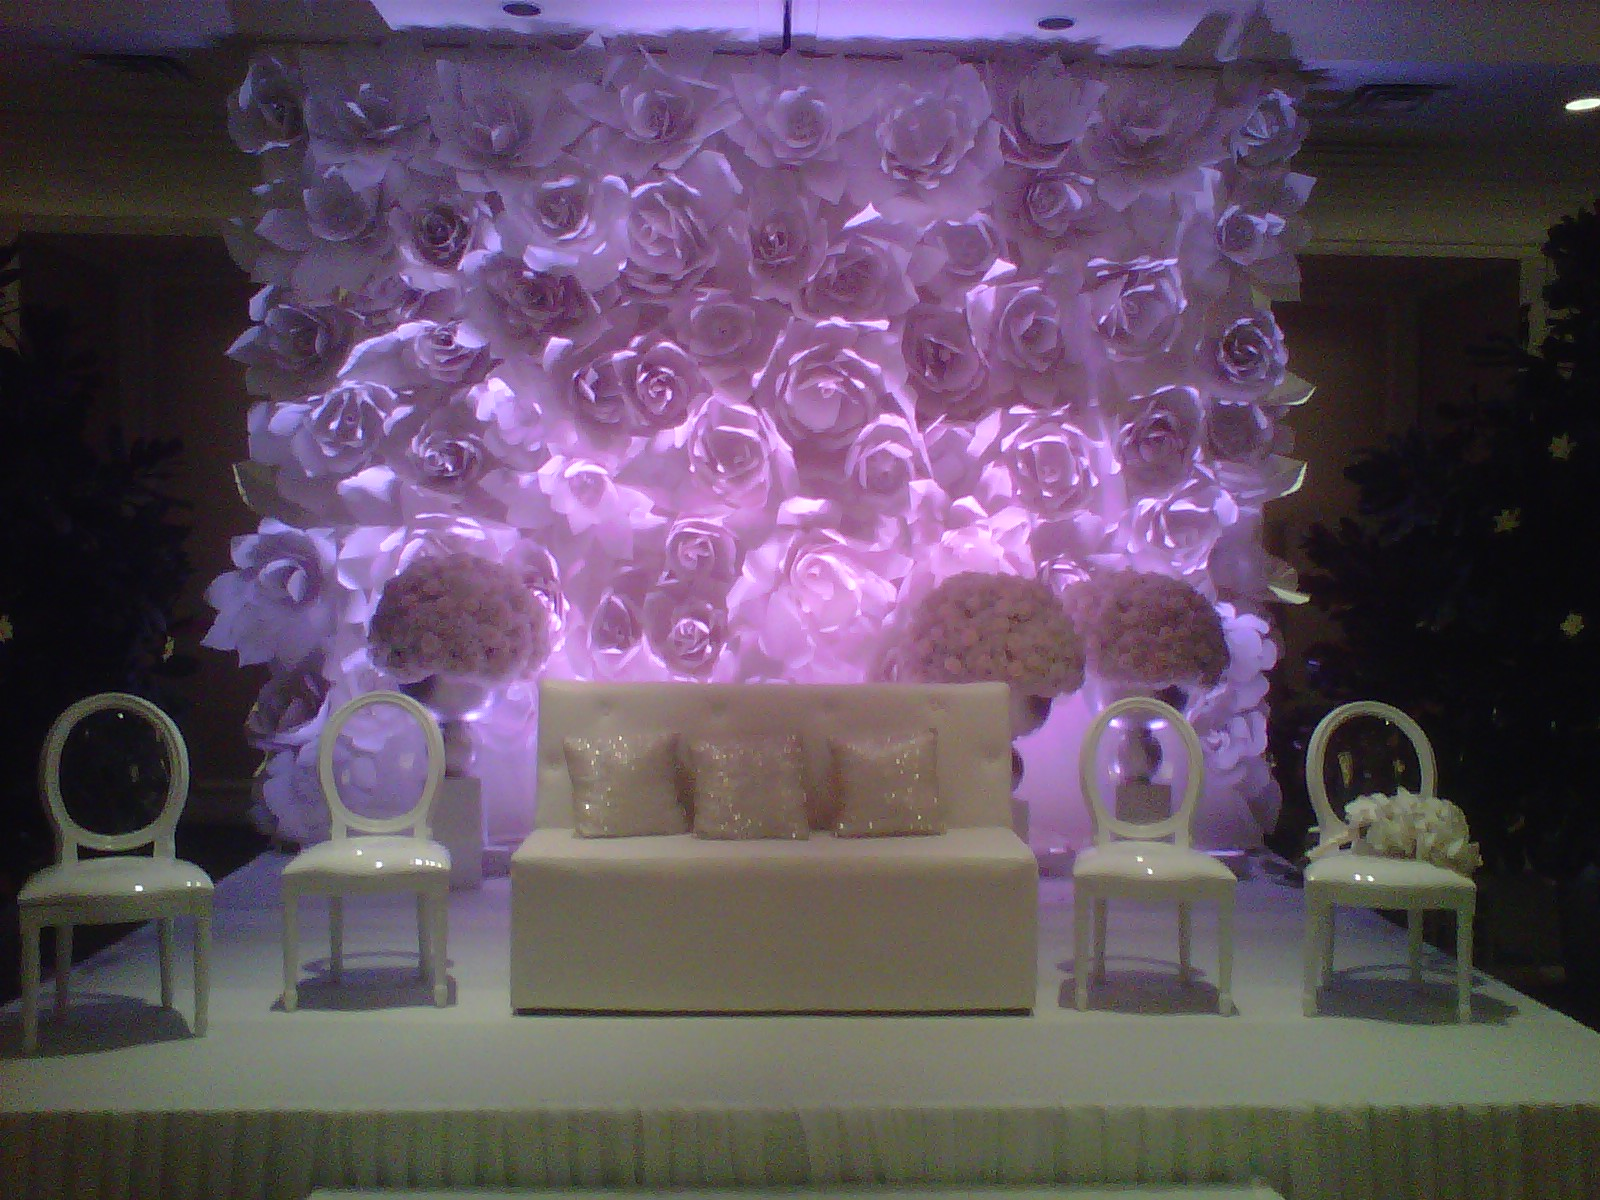 Wall Decoration For Wedding Ideas : Wedding backdrop romantic decoration